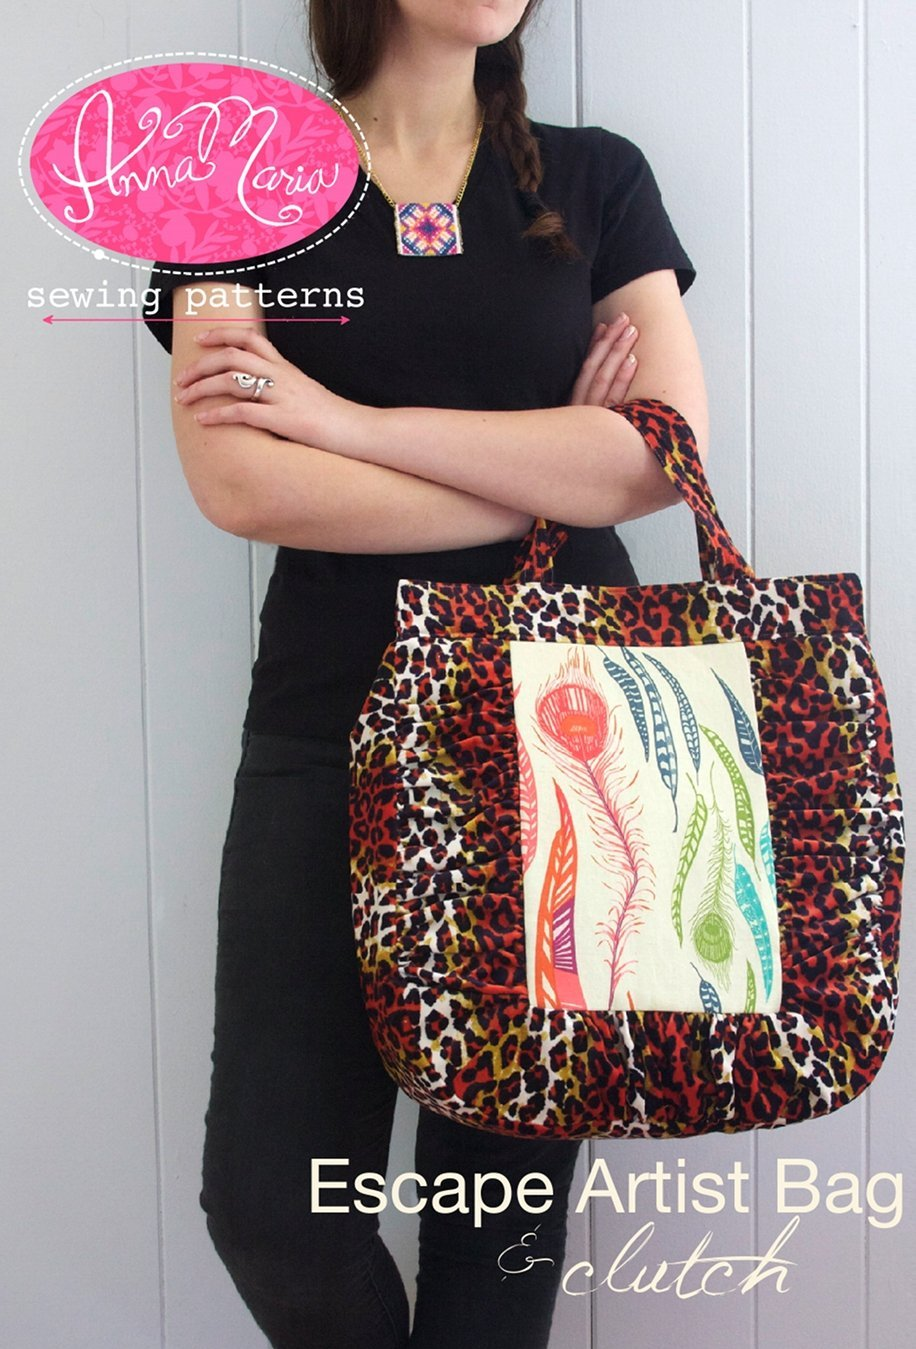 1-anna maria horner escape artist bag and clutch sewing pattern